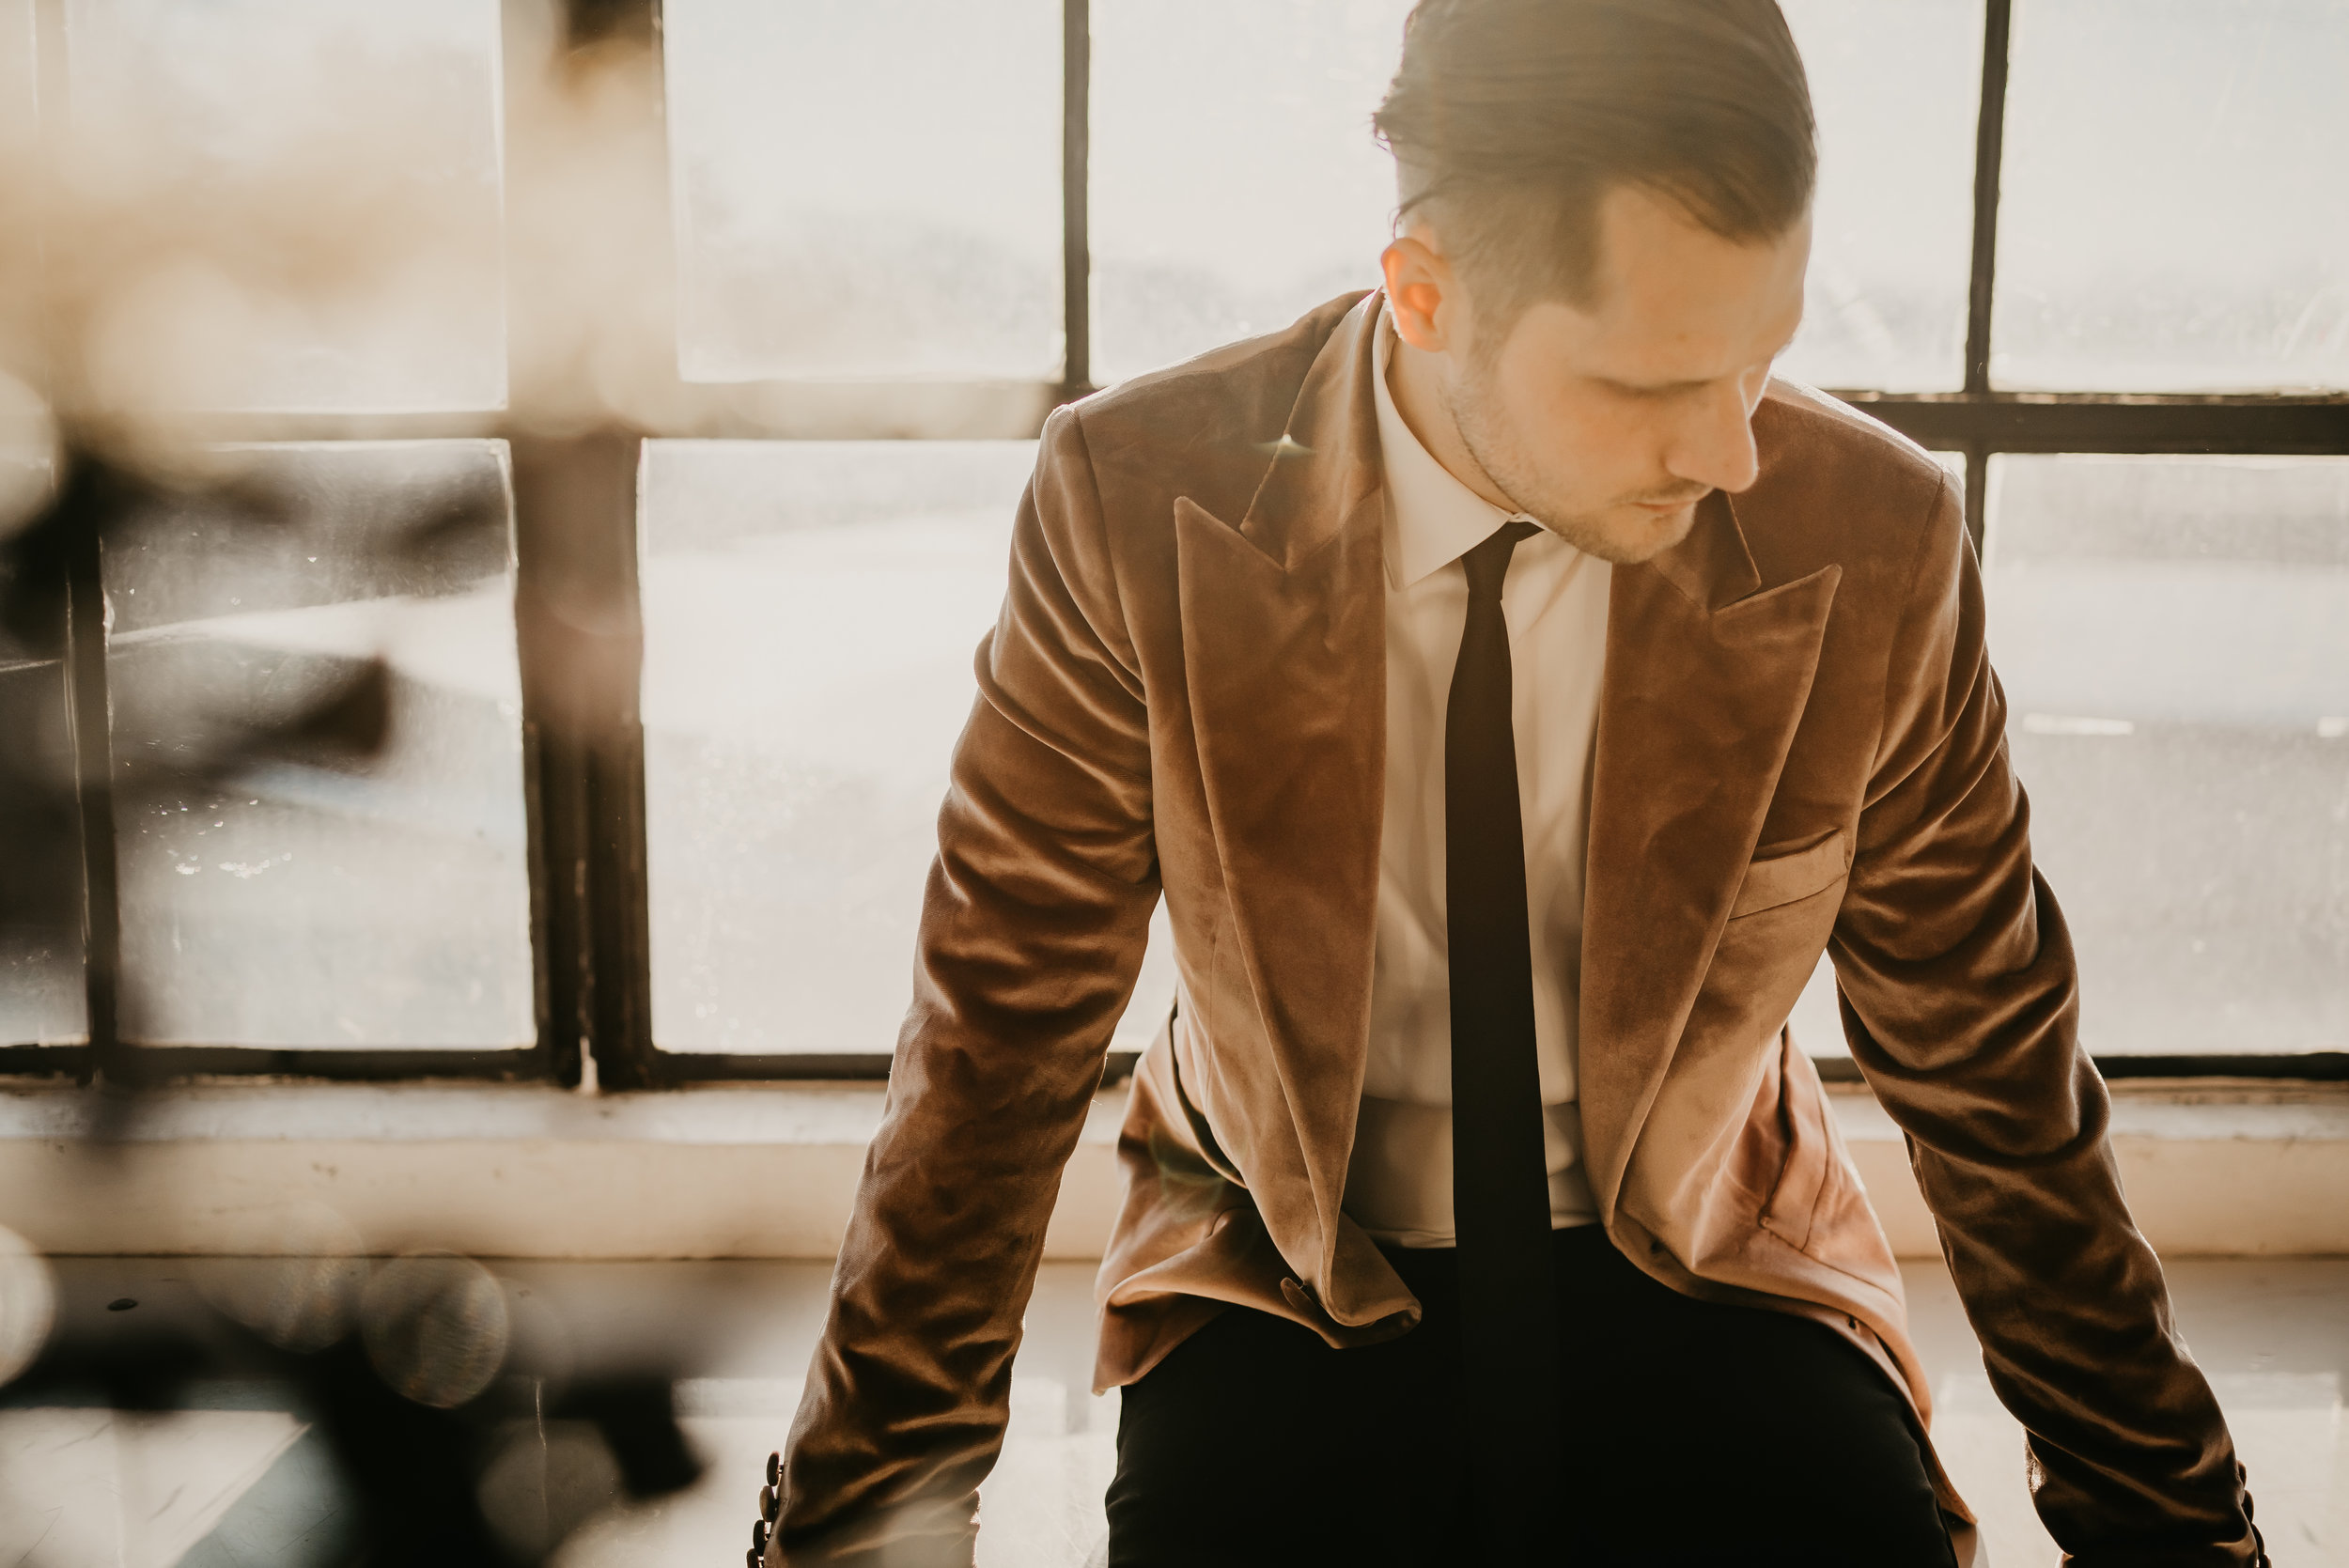 Grooms Attire | Tan Velvet Jacket with Black tie and pants - Pearl Weddings & Events